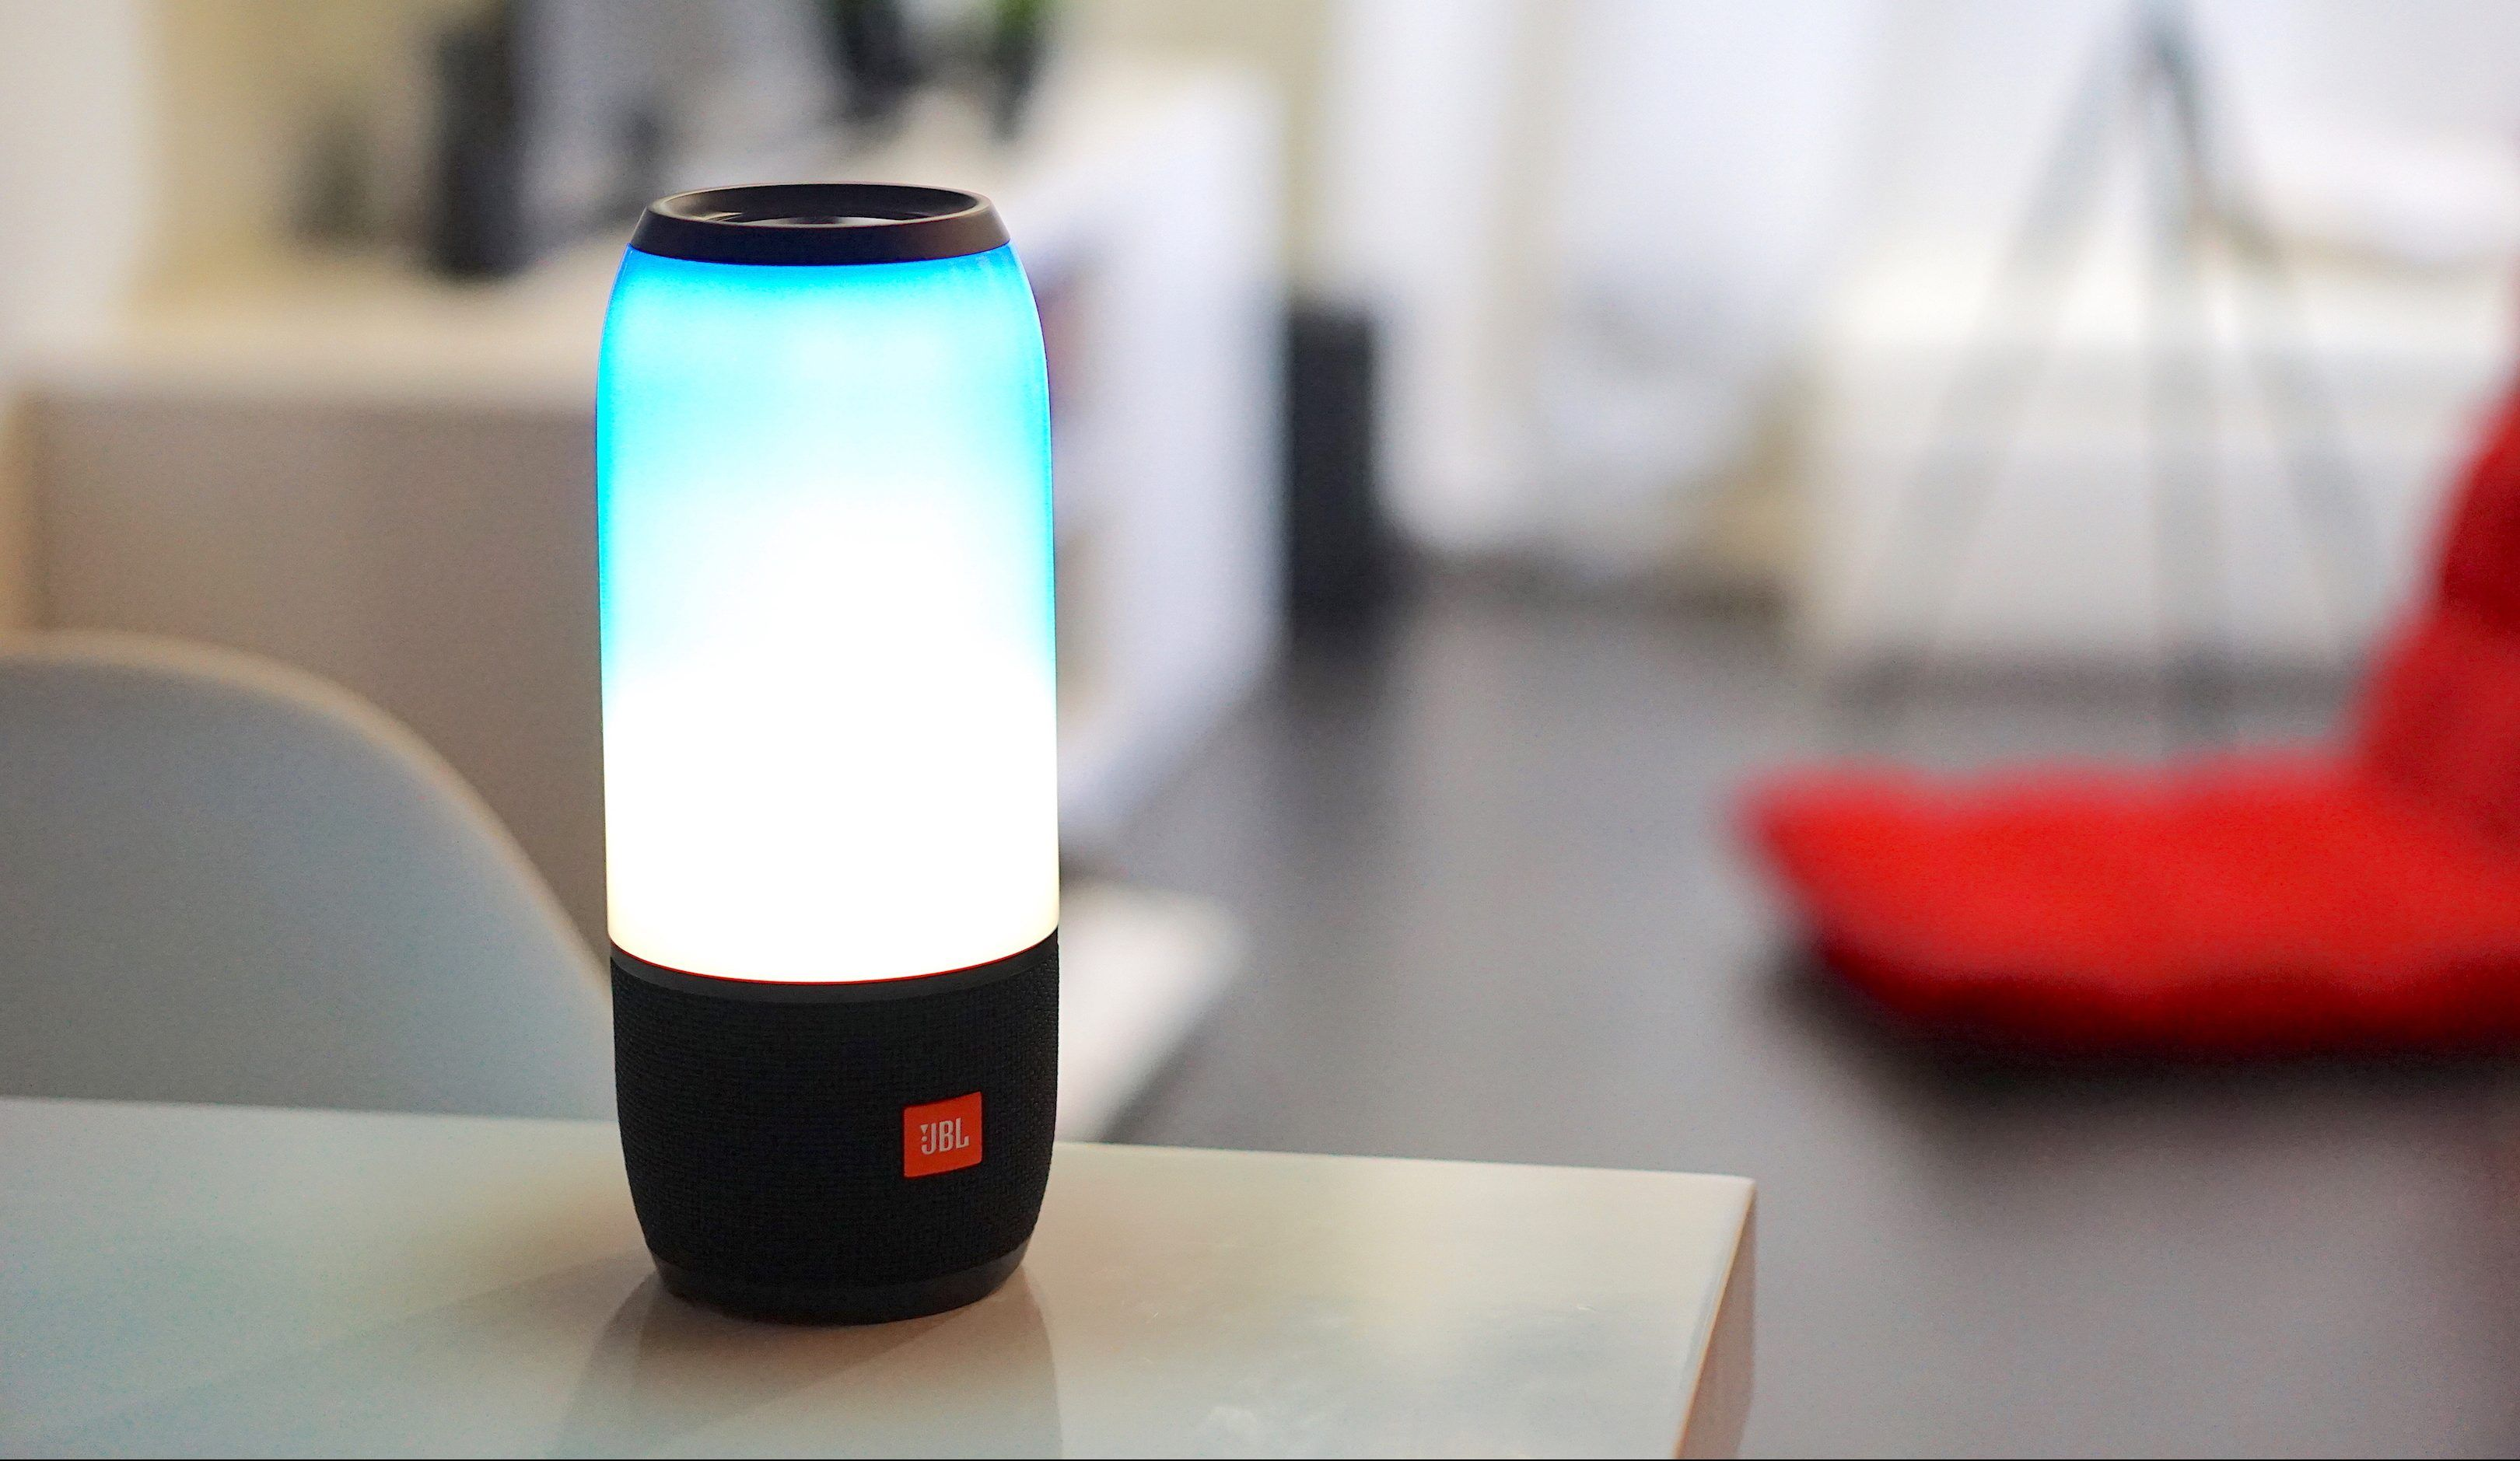 Lava Lamp Bluetooth Speaker Interesting Review  Jbl Pulse 3 Speaker The Lava Lamp That Sings  Http Review